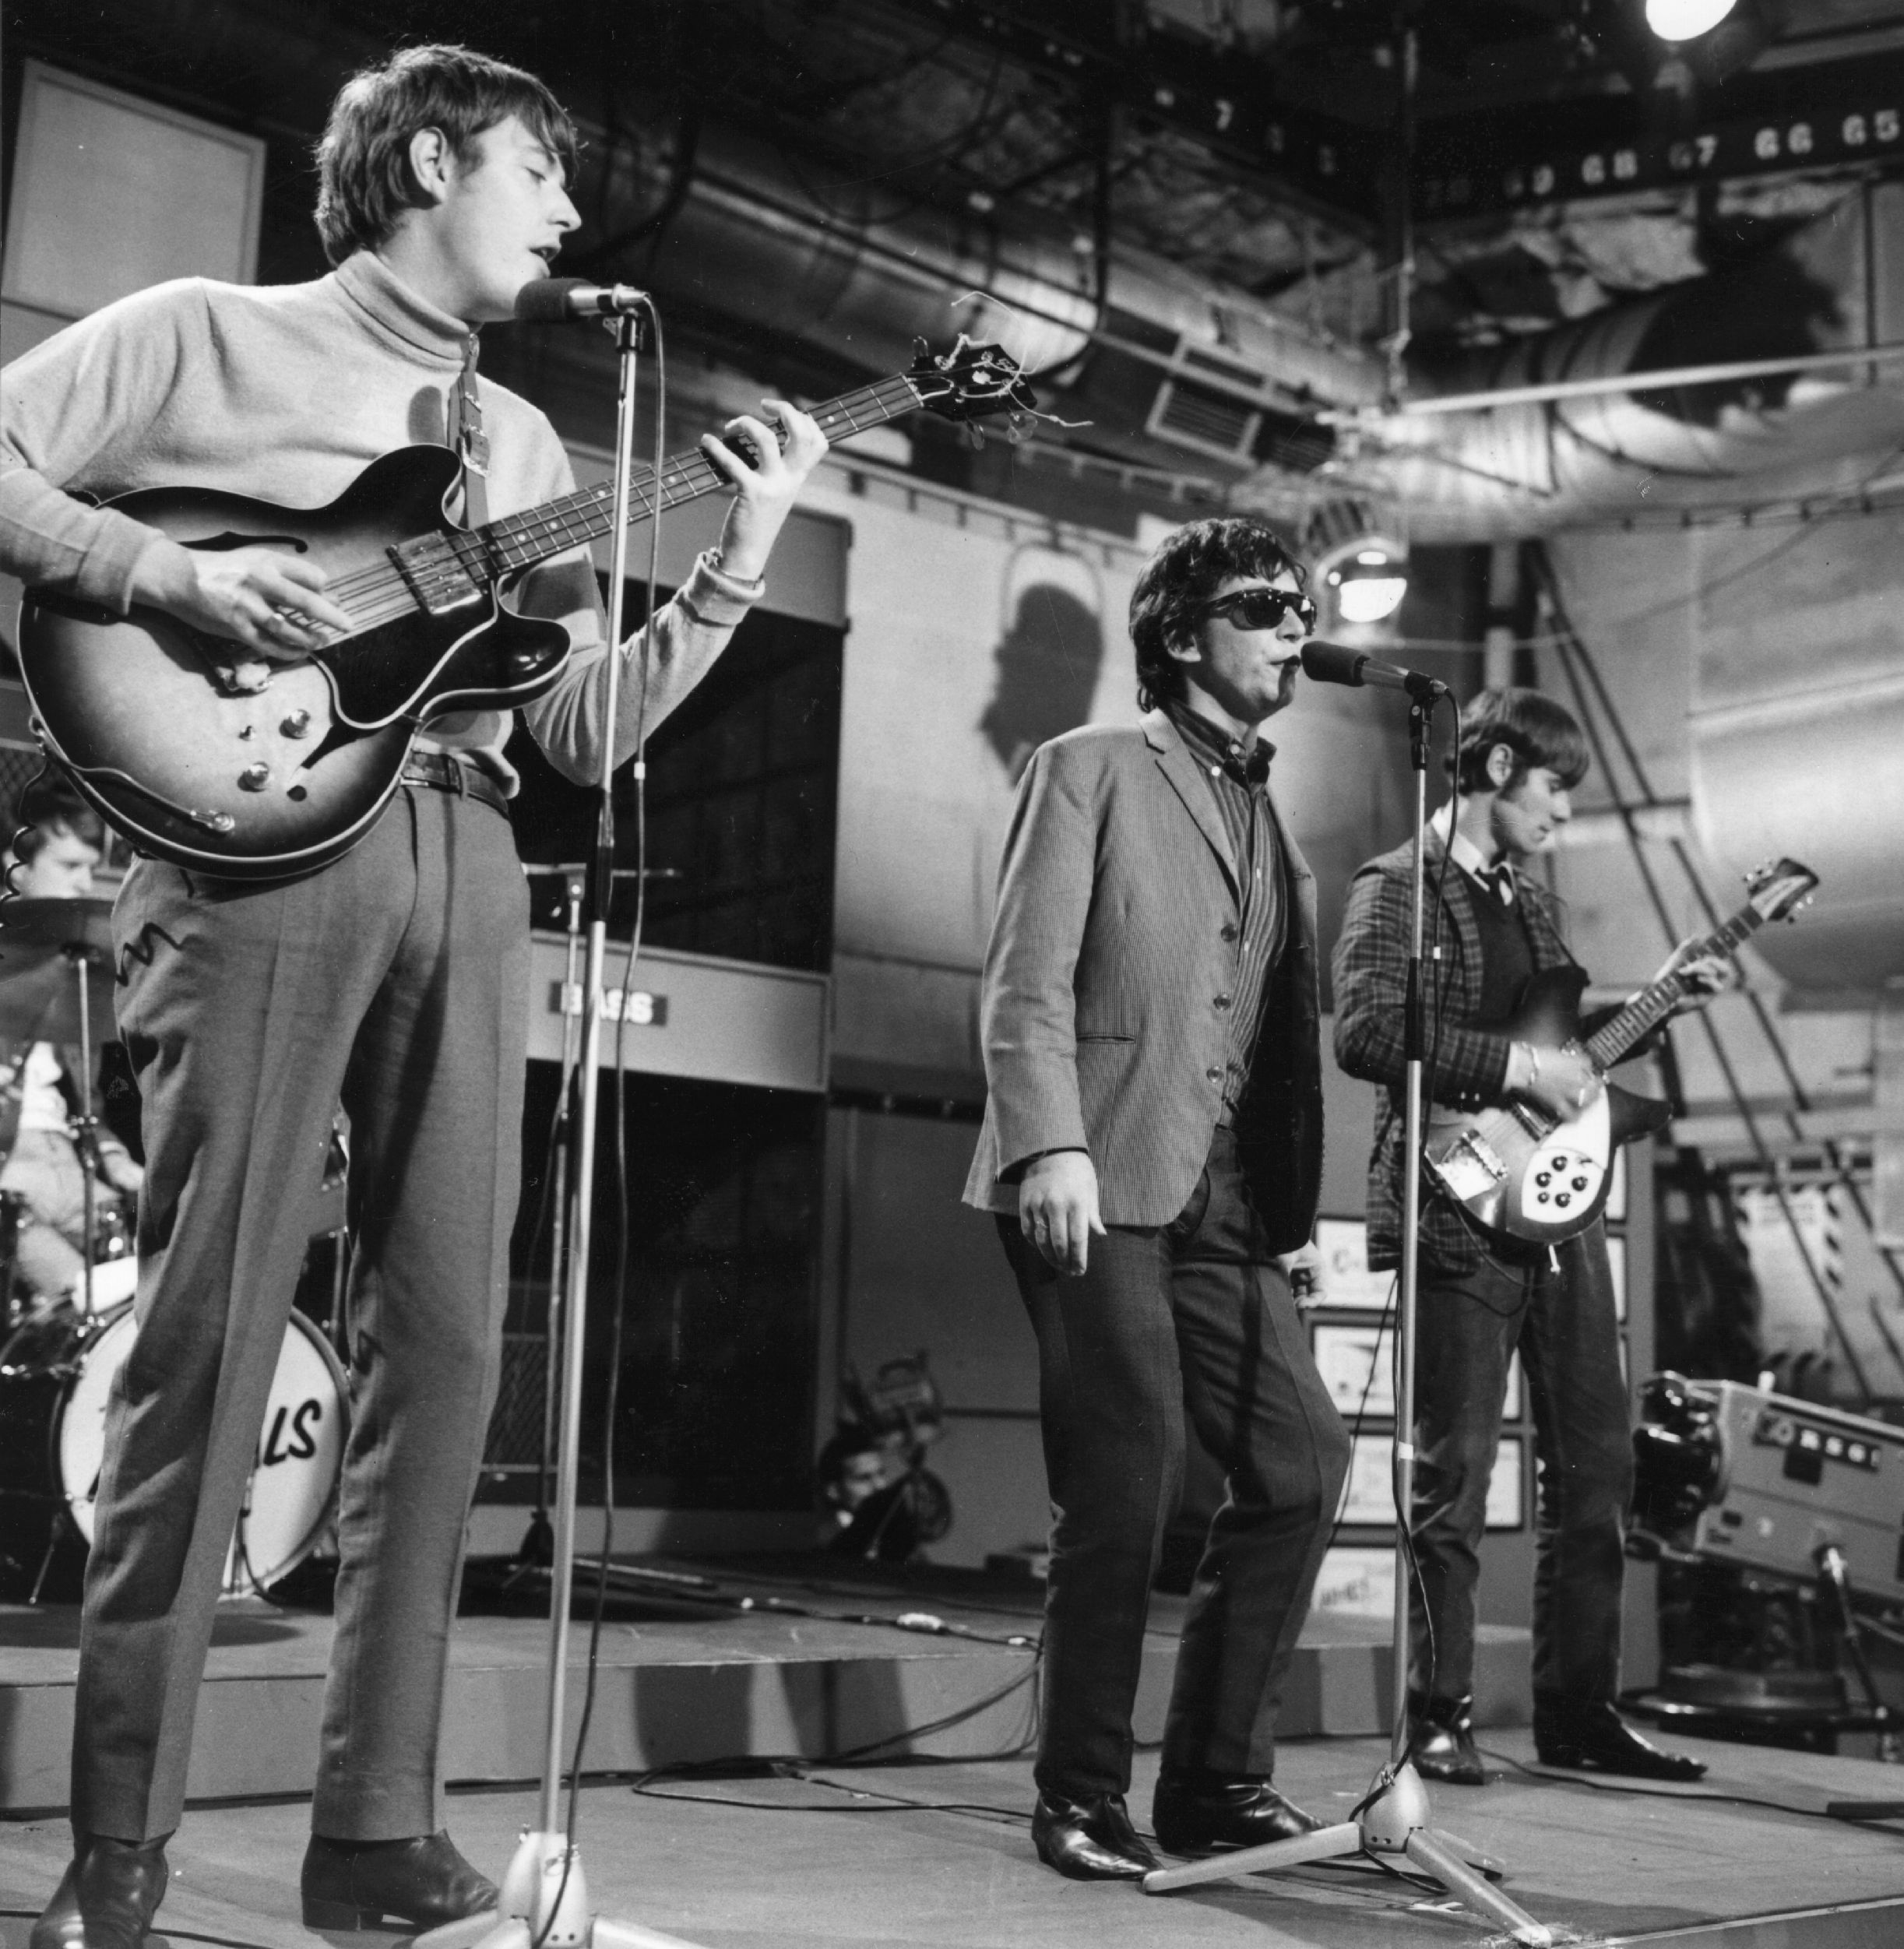 Pop group The Animals performing in the 'Ready Steady Go' television studio. (Photo by Express Newspapers/Getty Images)